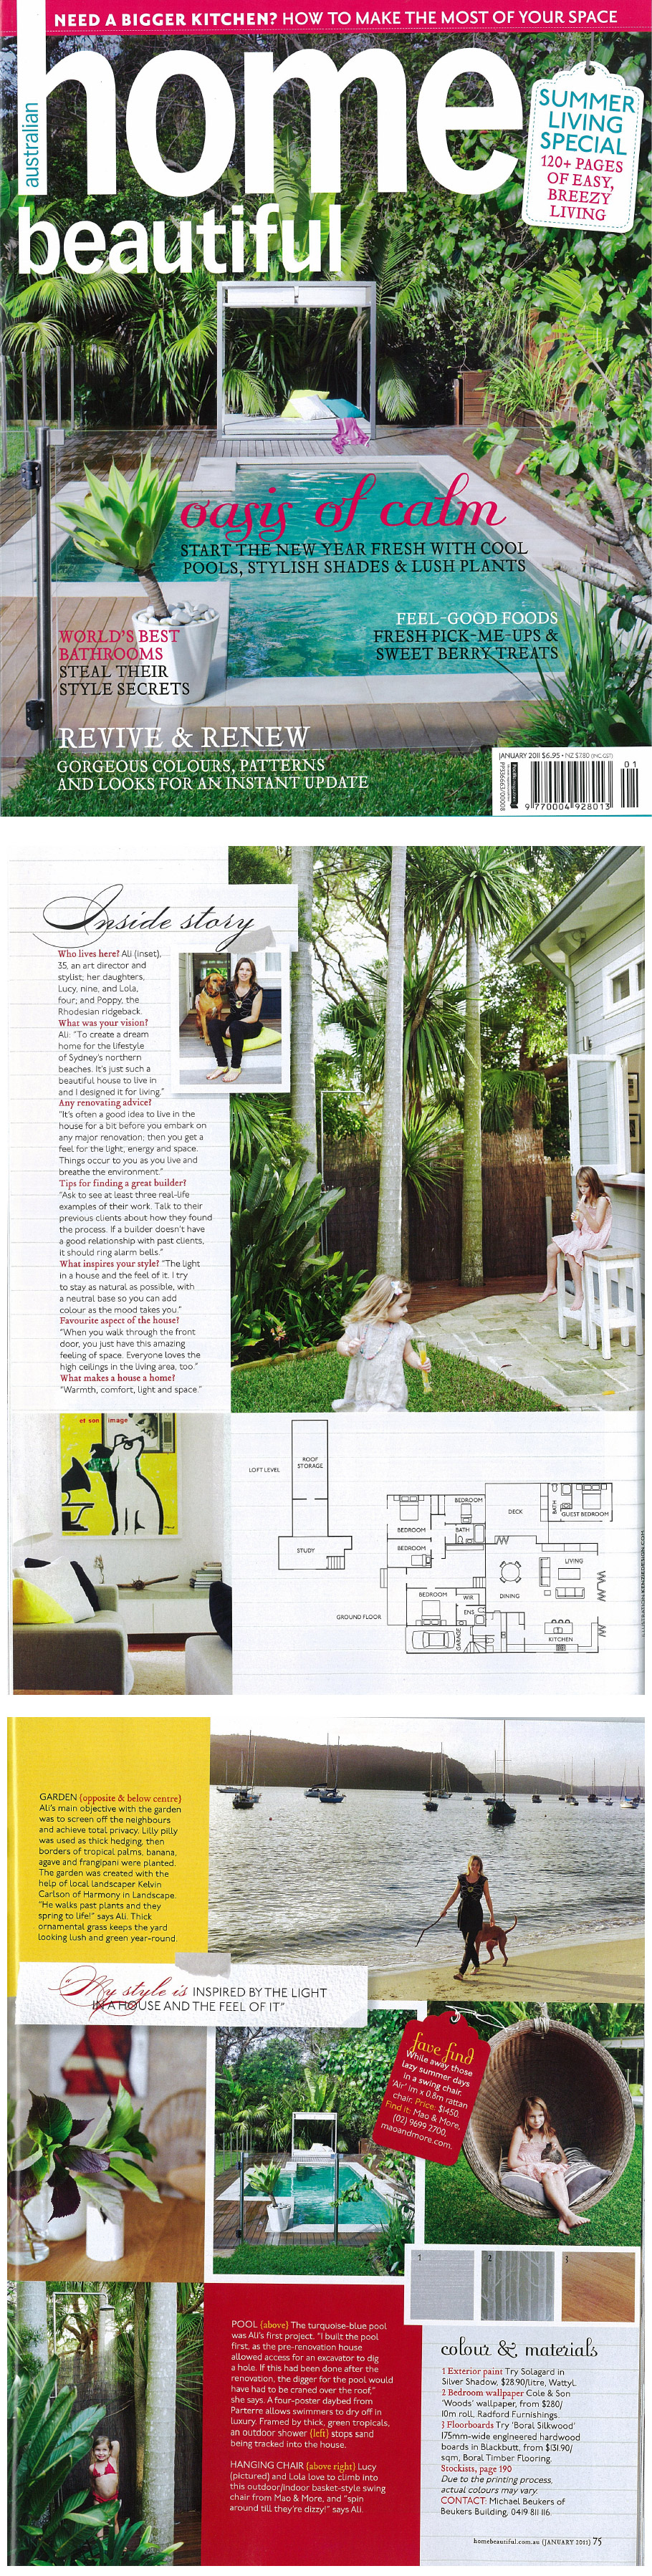 Harmony in landscape magazine articles backyard and garden for Home design ideas articles